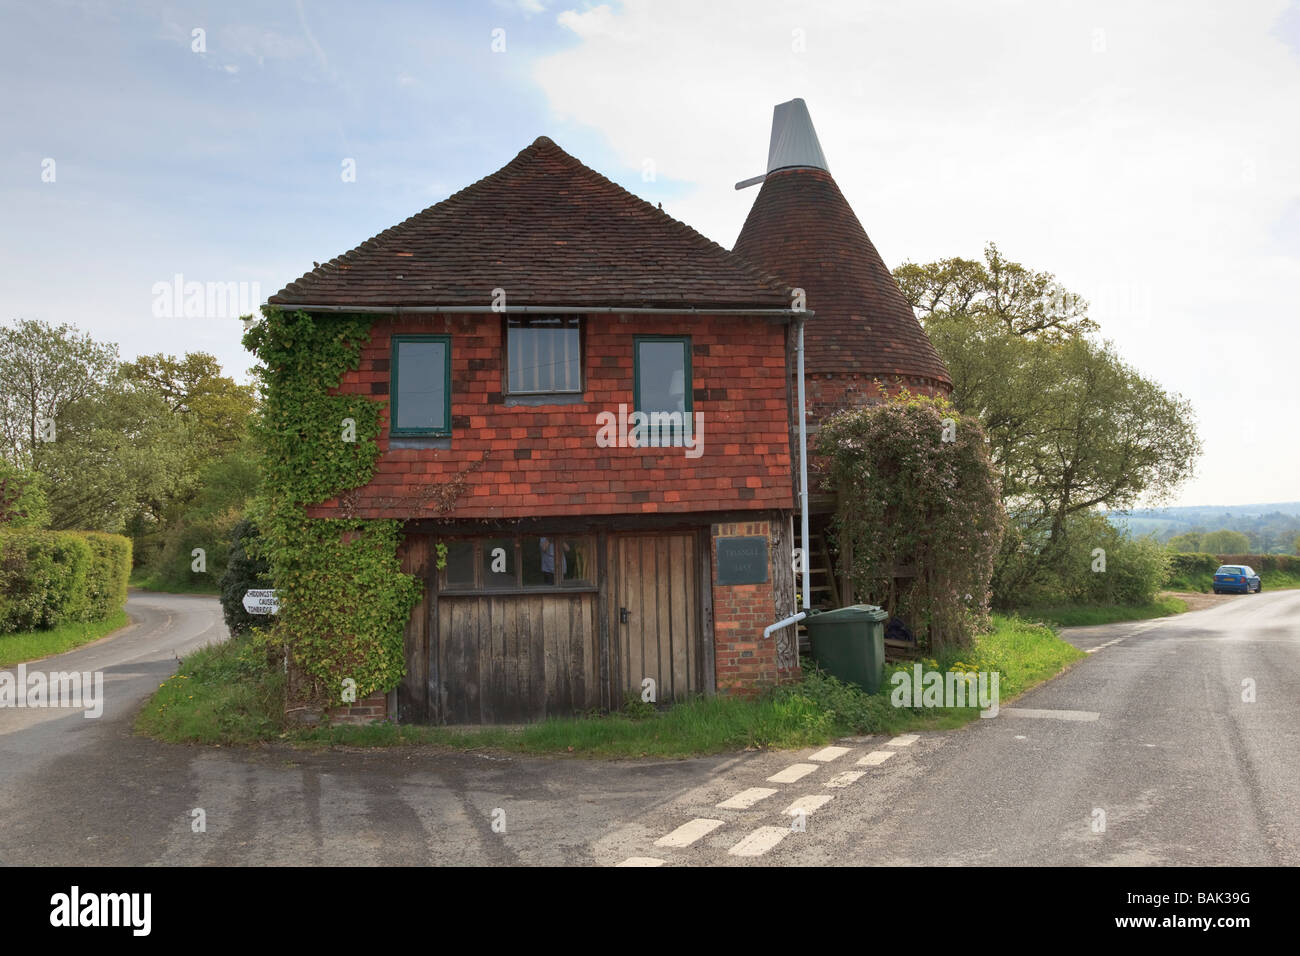 Triangle Oast, situated on a three way road junction near Chiddingstone, Kent. Now Converted to living Accommodation - Stock Image